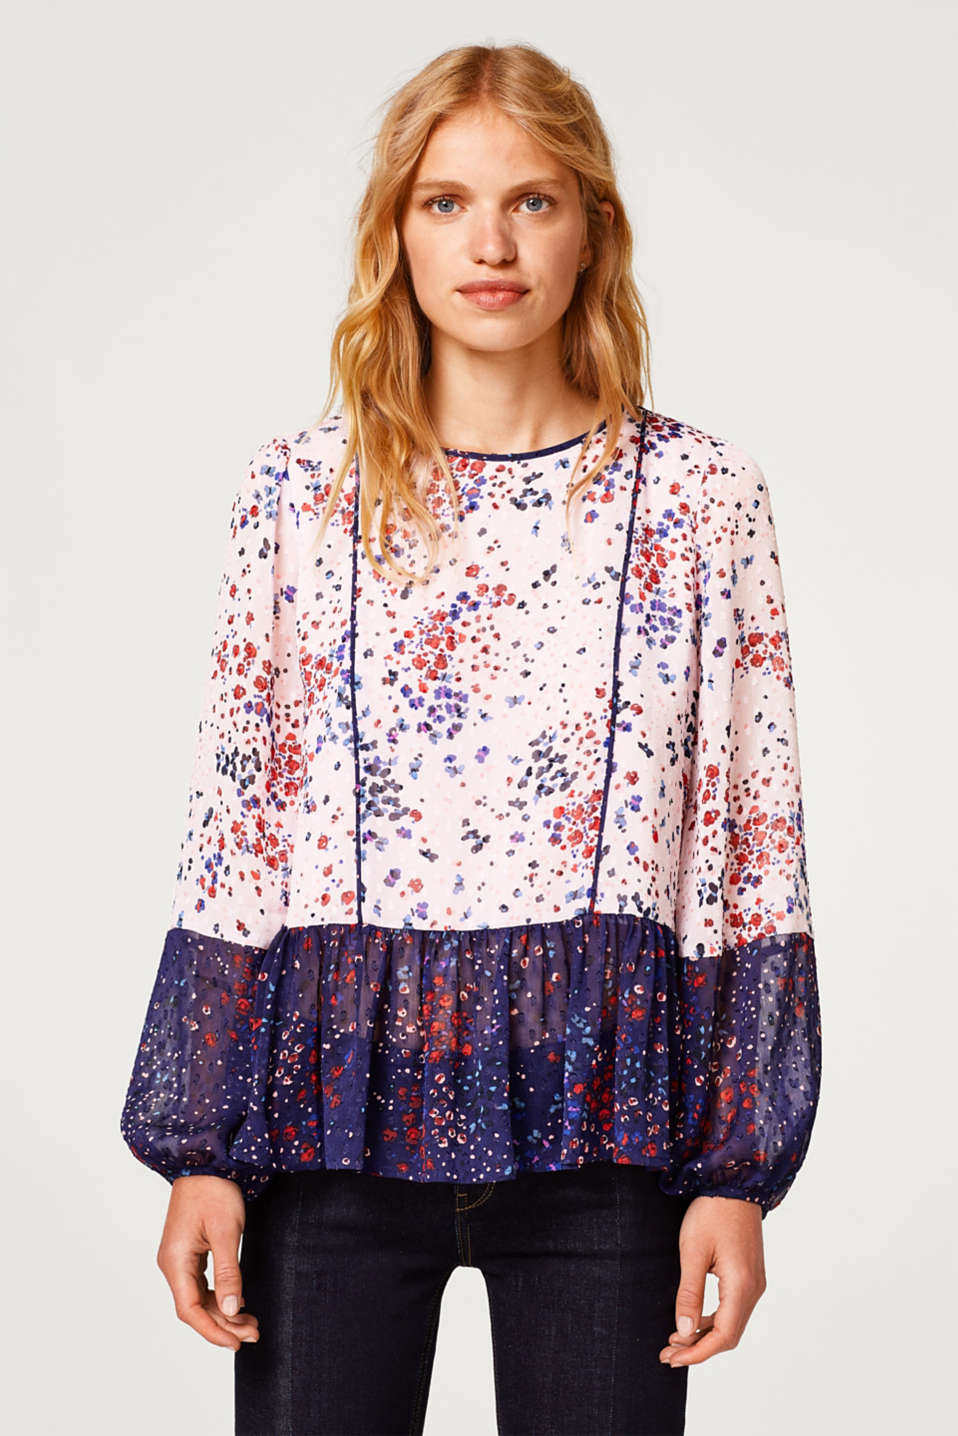 Esprit - Chiffon tunic blouse with a floral print